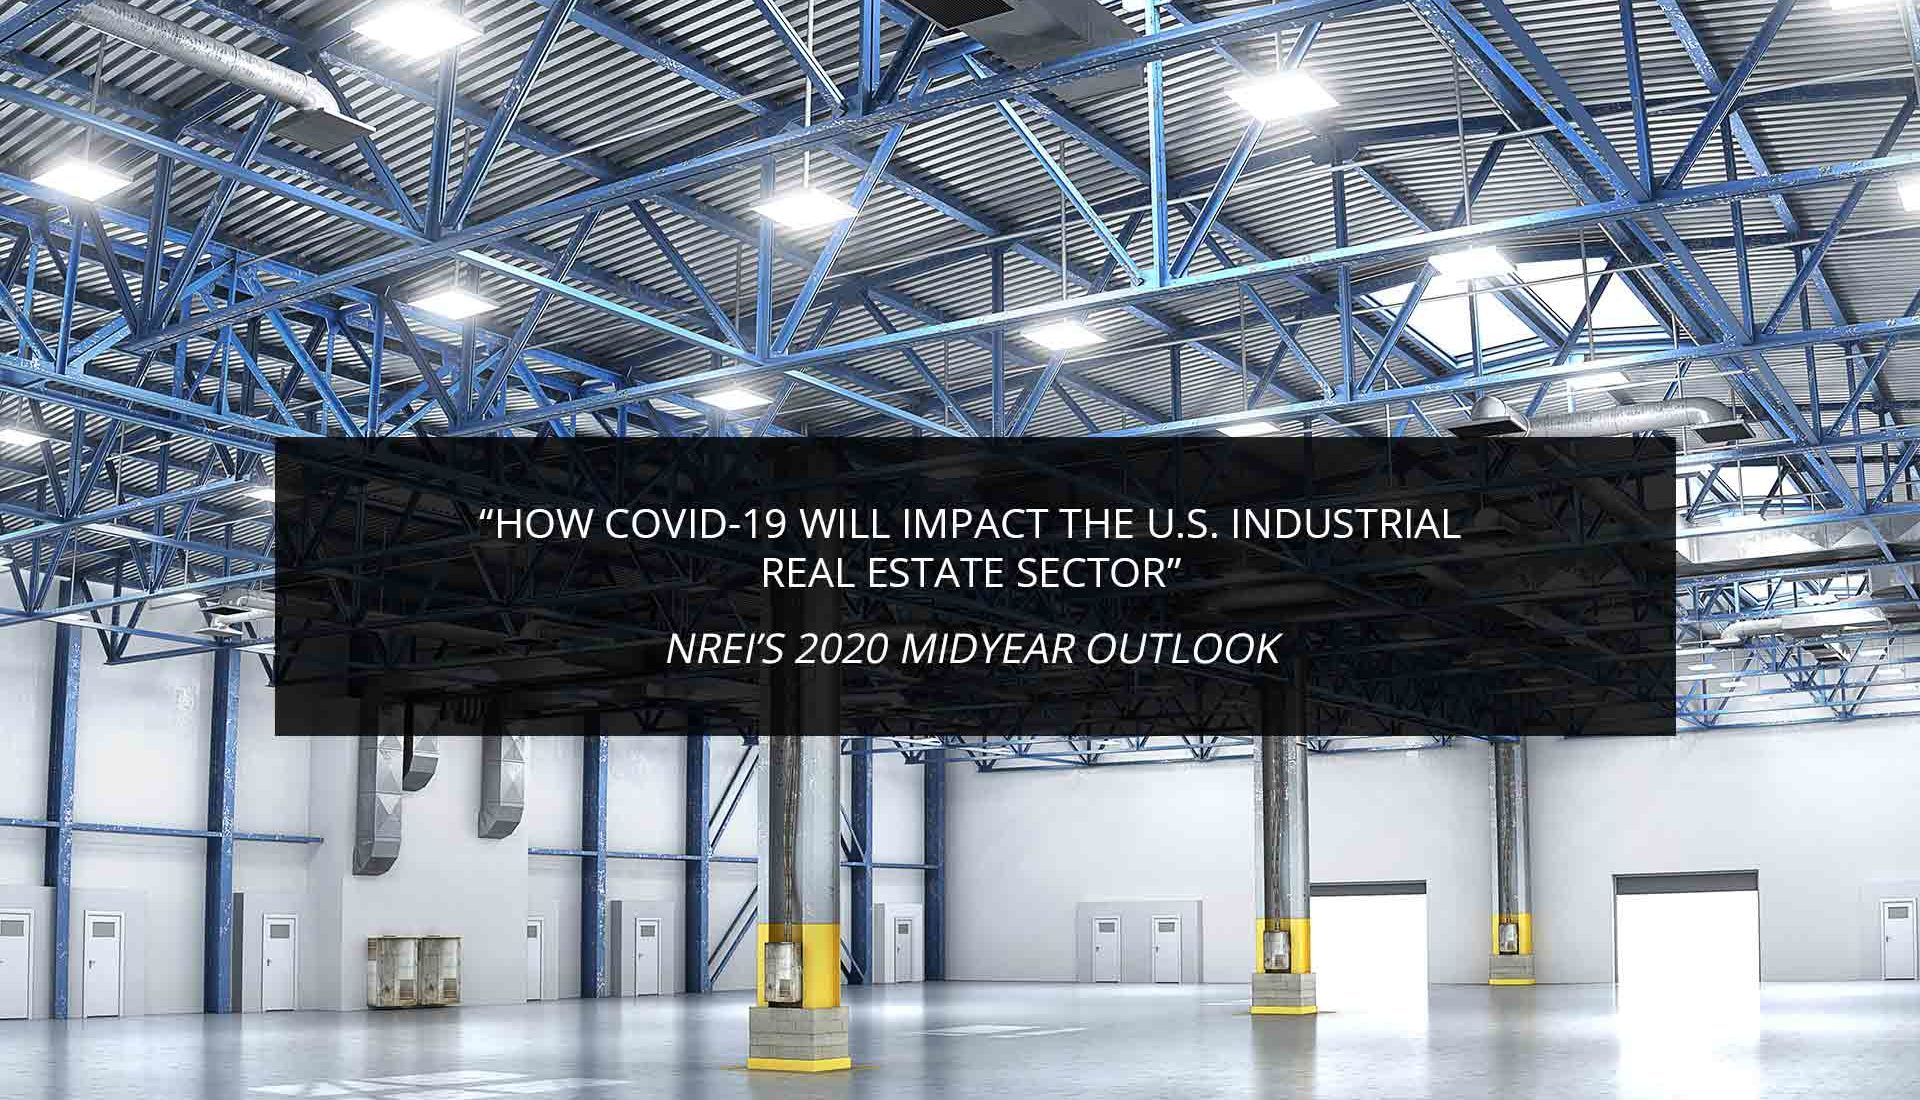 How COVID-19 Will Impact the U.S. Industrial Real Estate Sector